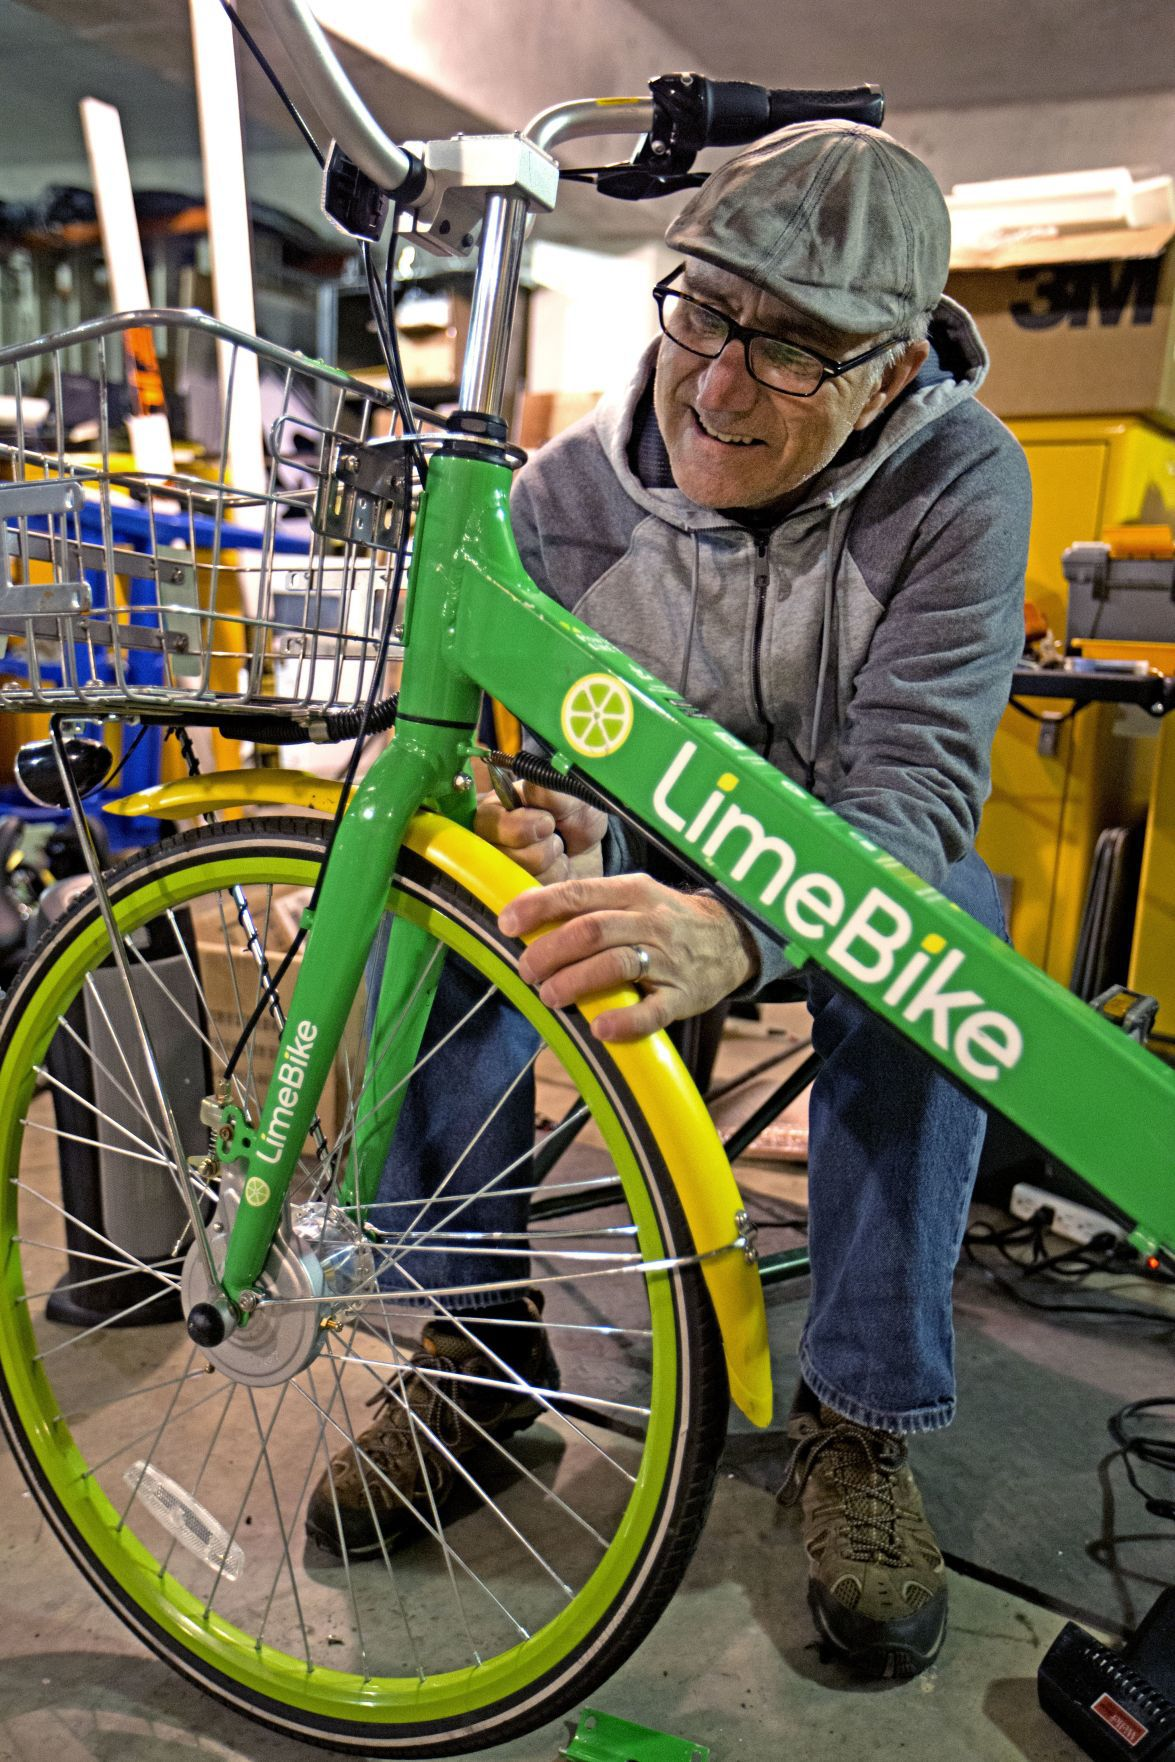 Greensboro riders log more than 30K miles on LimeBikes